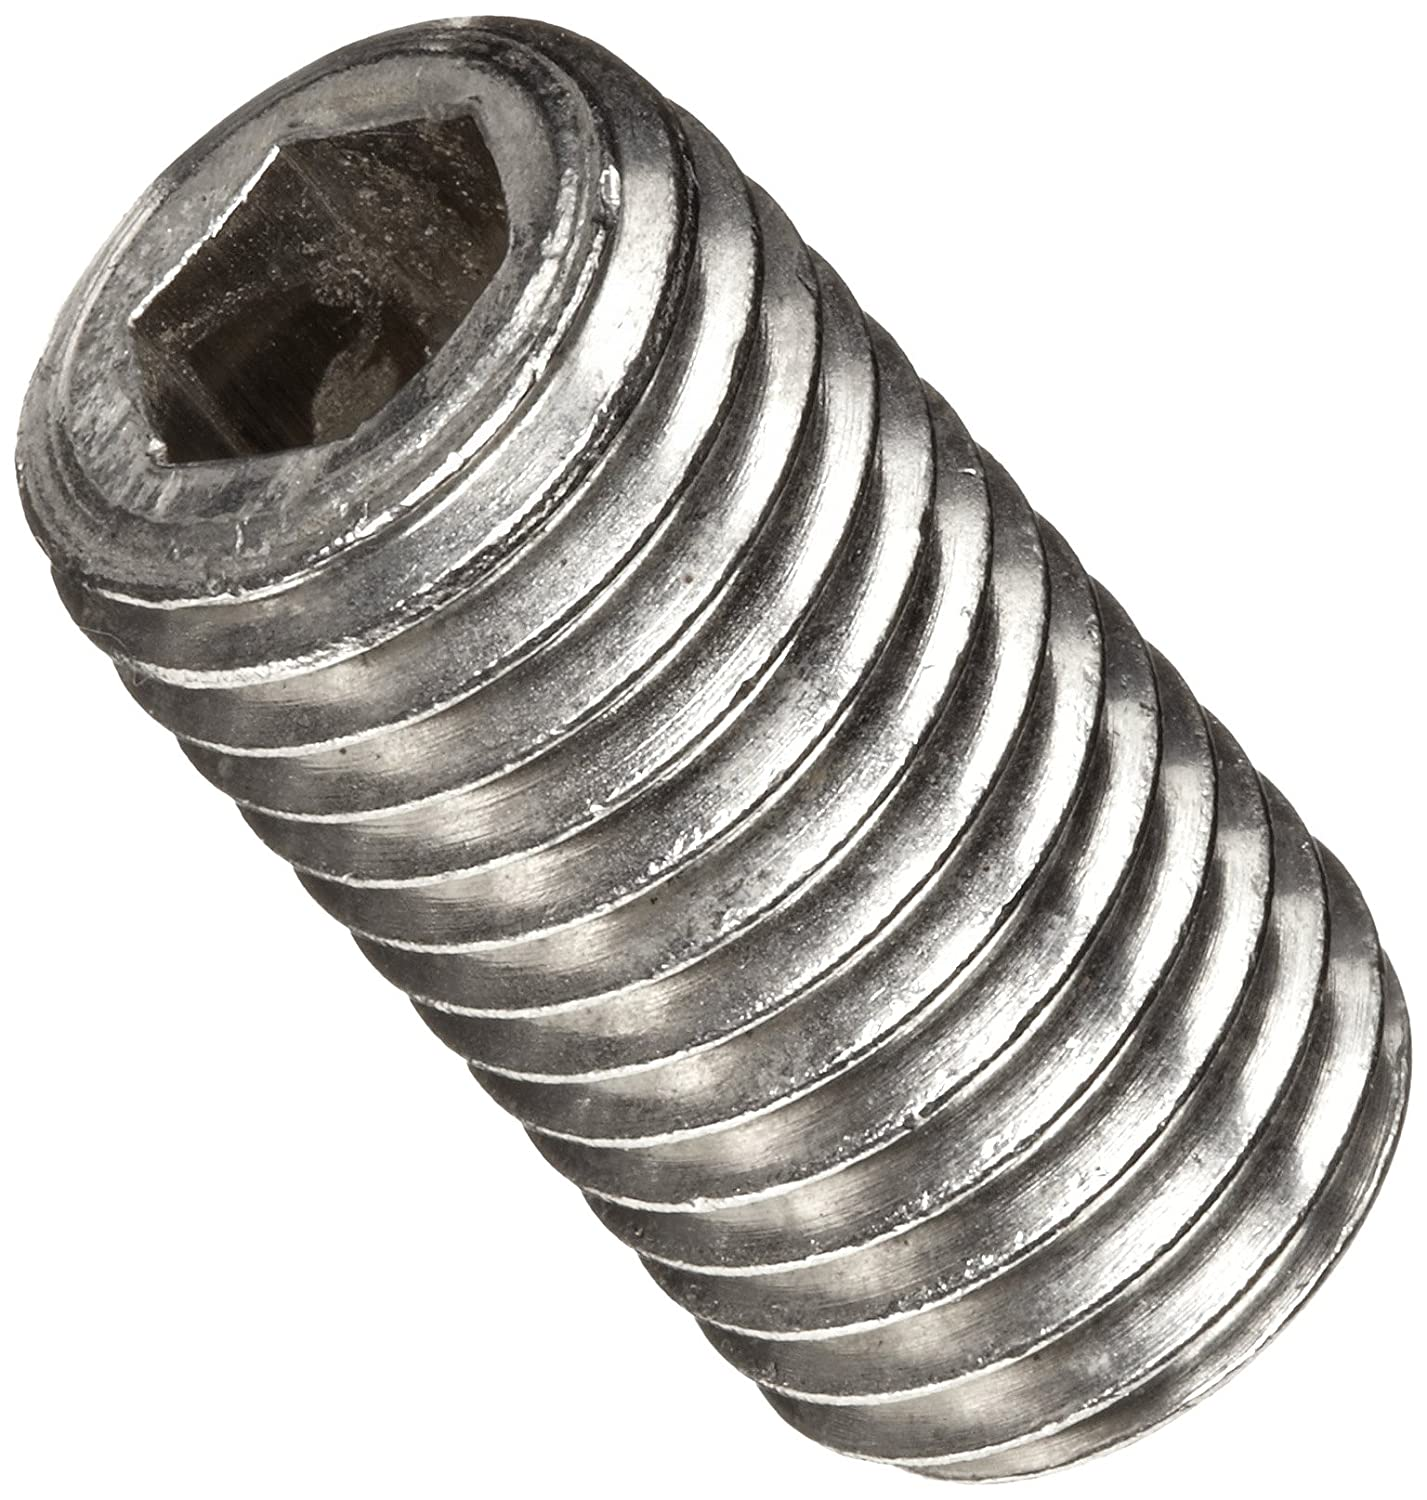 Imported 18-8 Stainless Steel Set Screw Meets ASME B18.3//ASTM F880 Pack of 100 1//4-20 UNC Threads Cup Point 3//16 Length Plain Finish Hex Socket Drive